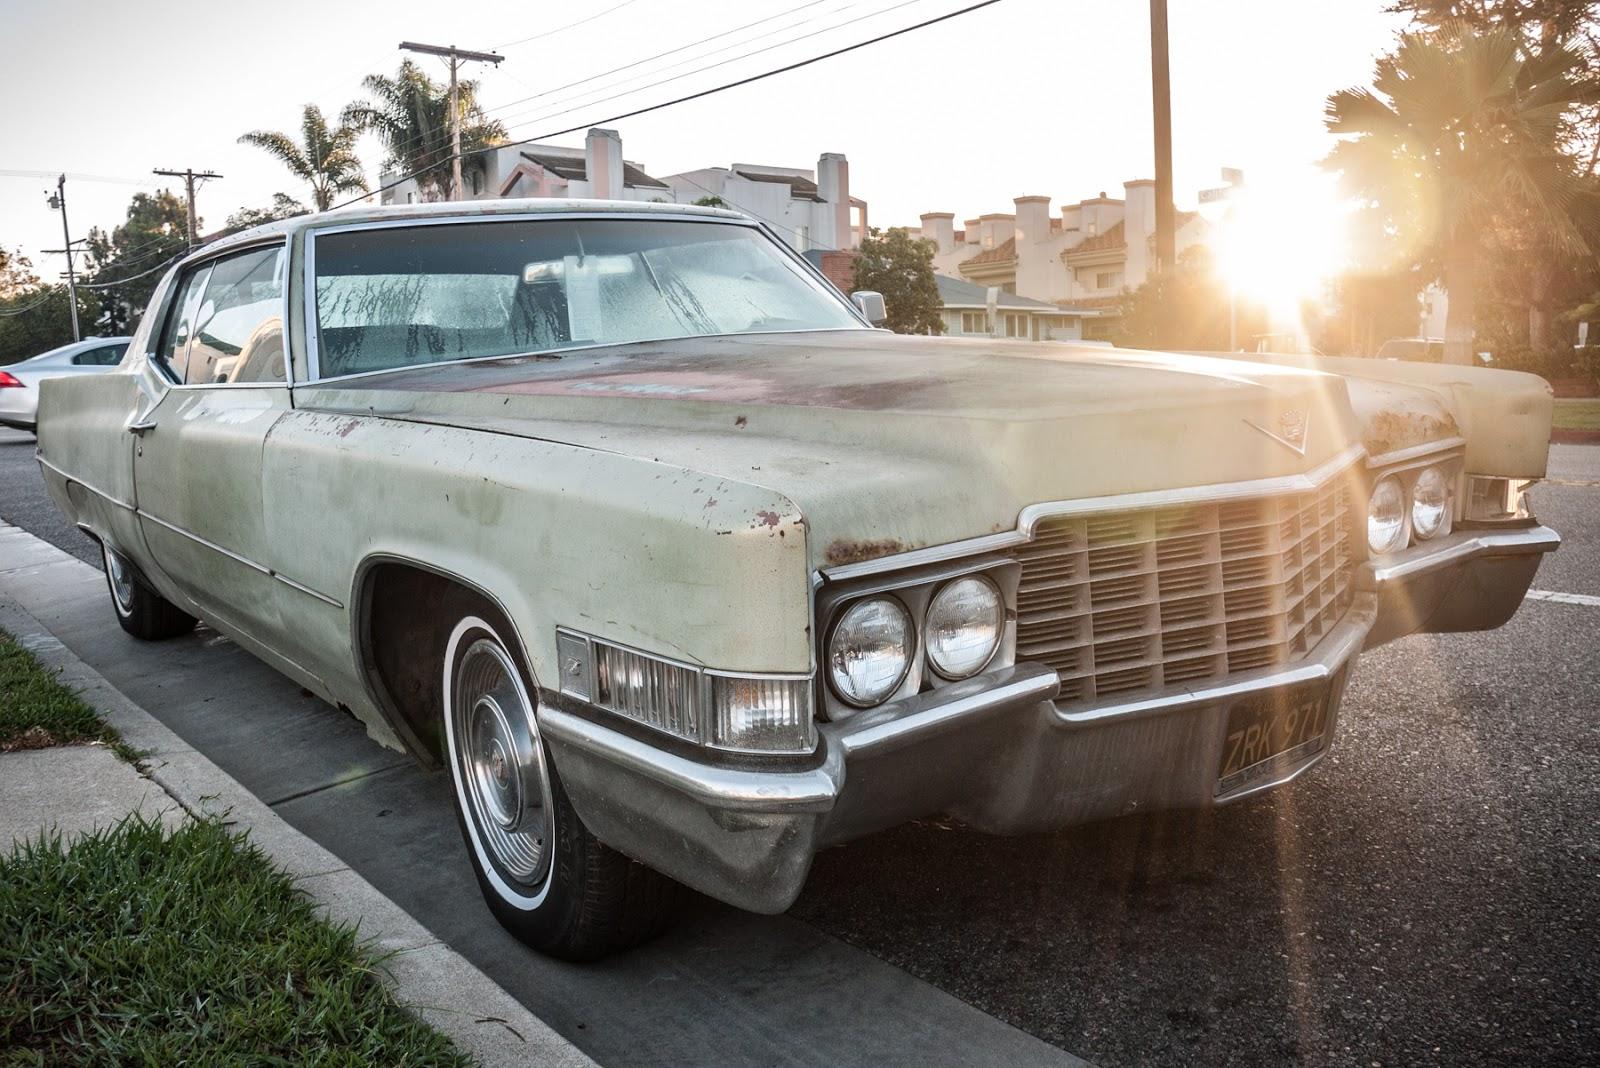 THE STREET PEEP: 1969 Cadillac Coupe DeVille